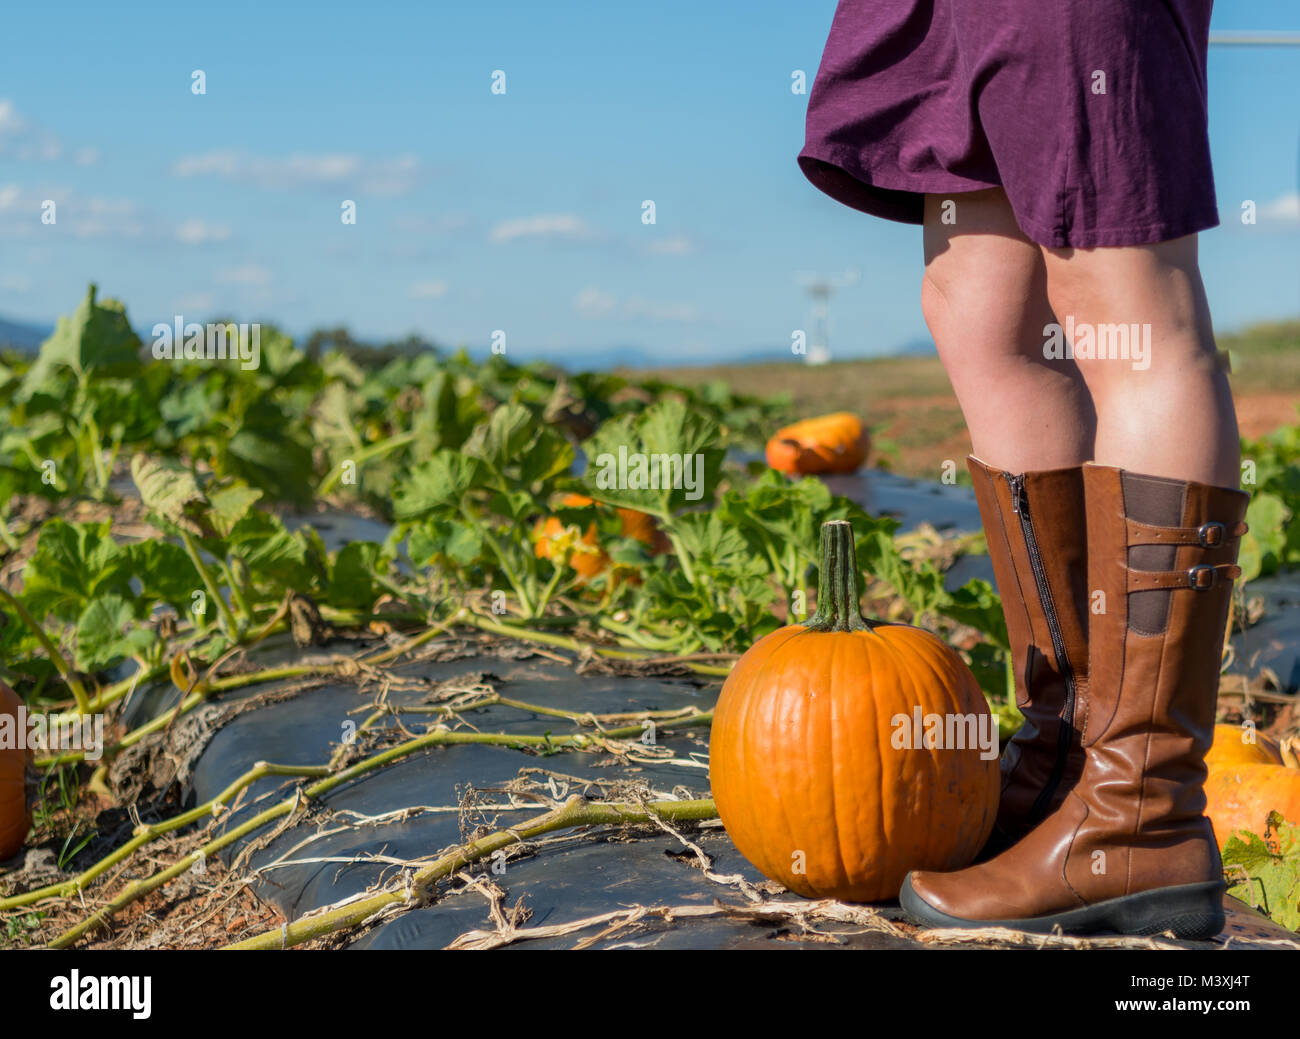 Exploring a Pumpkin Patch  on a Sunny Fall Day - Stock Image